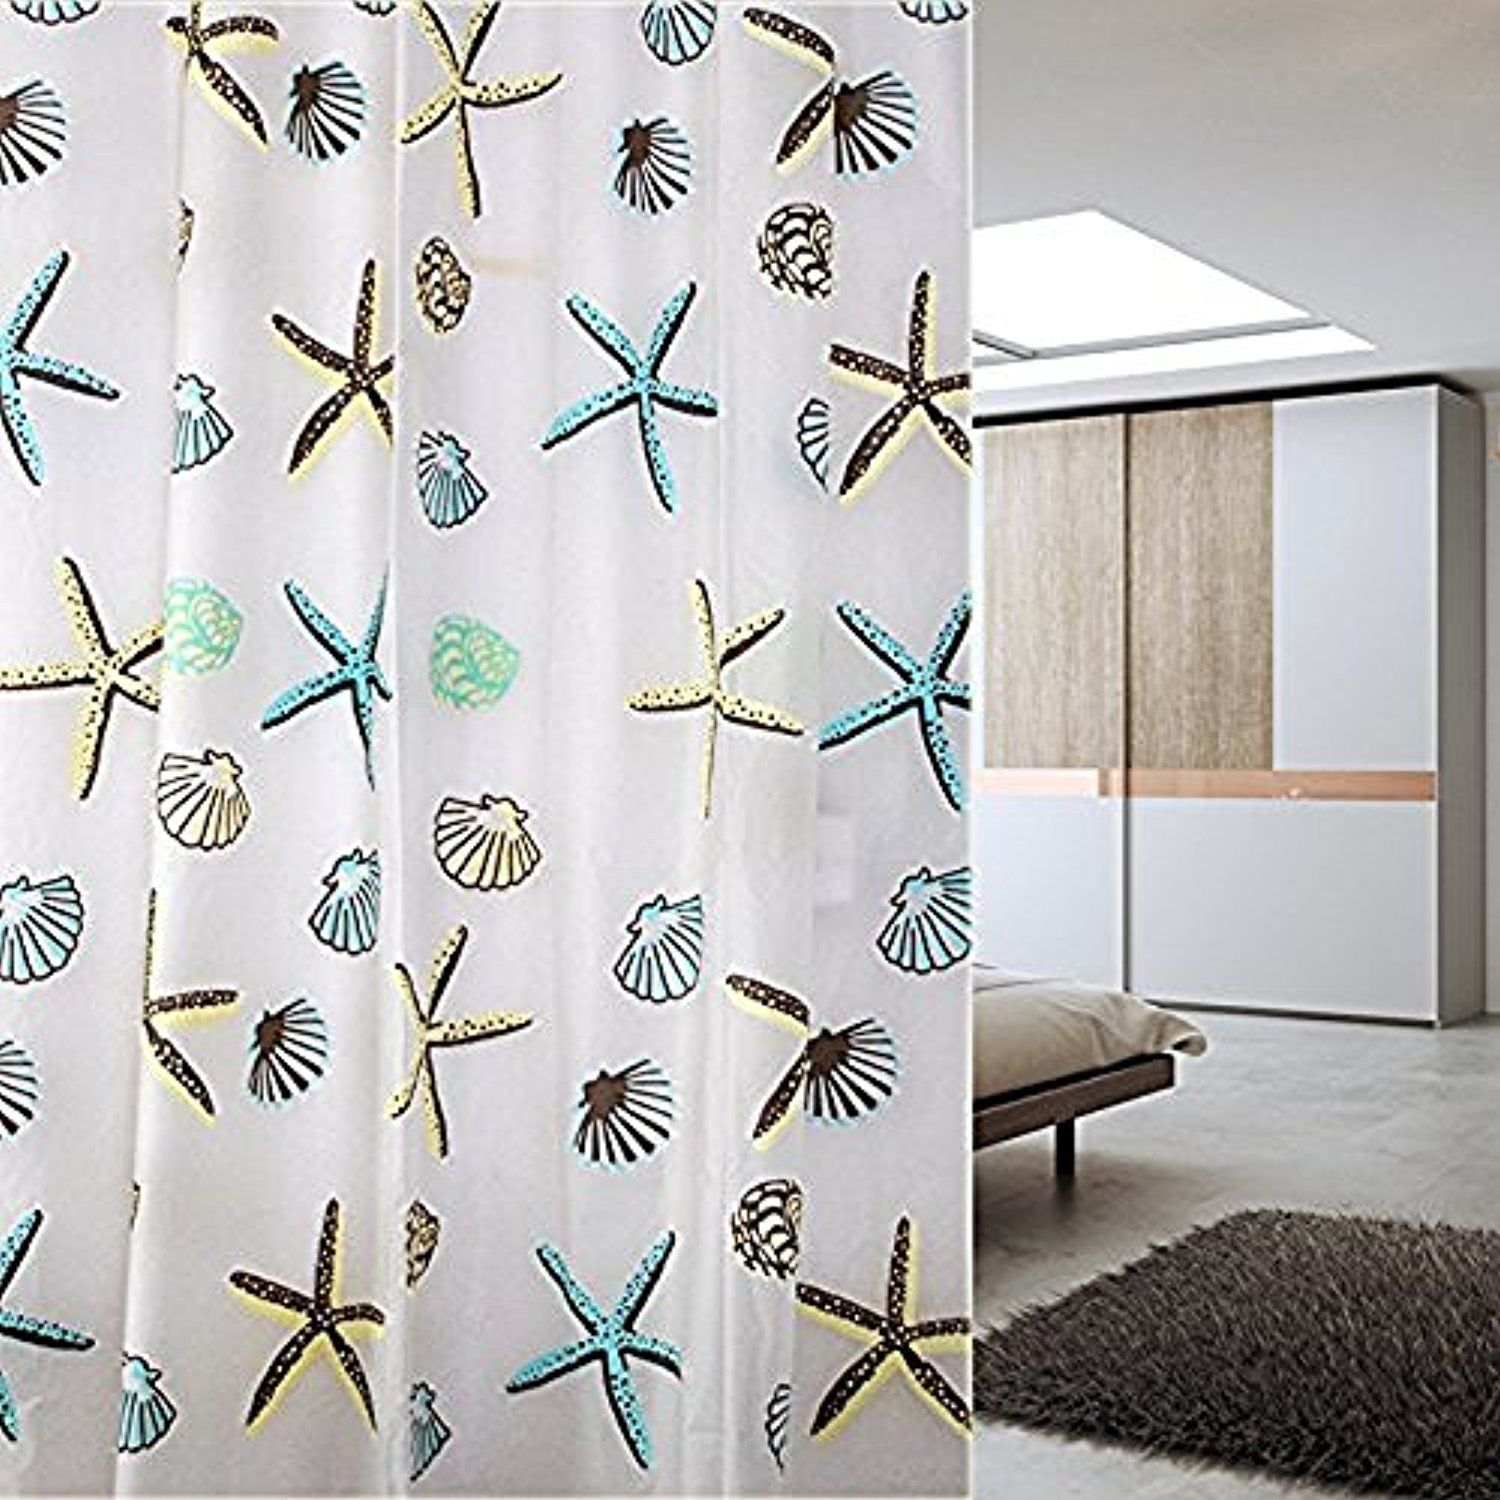 JynXos Starfish and Sea Shells PEVA Mildew Free Water Repellant Shower Curtain 72X80 Inch >>> Visit the image link more details. (This is an affiliate link) #Bath